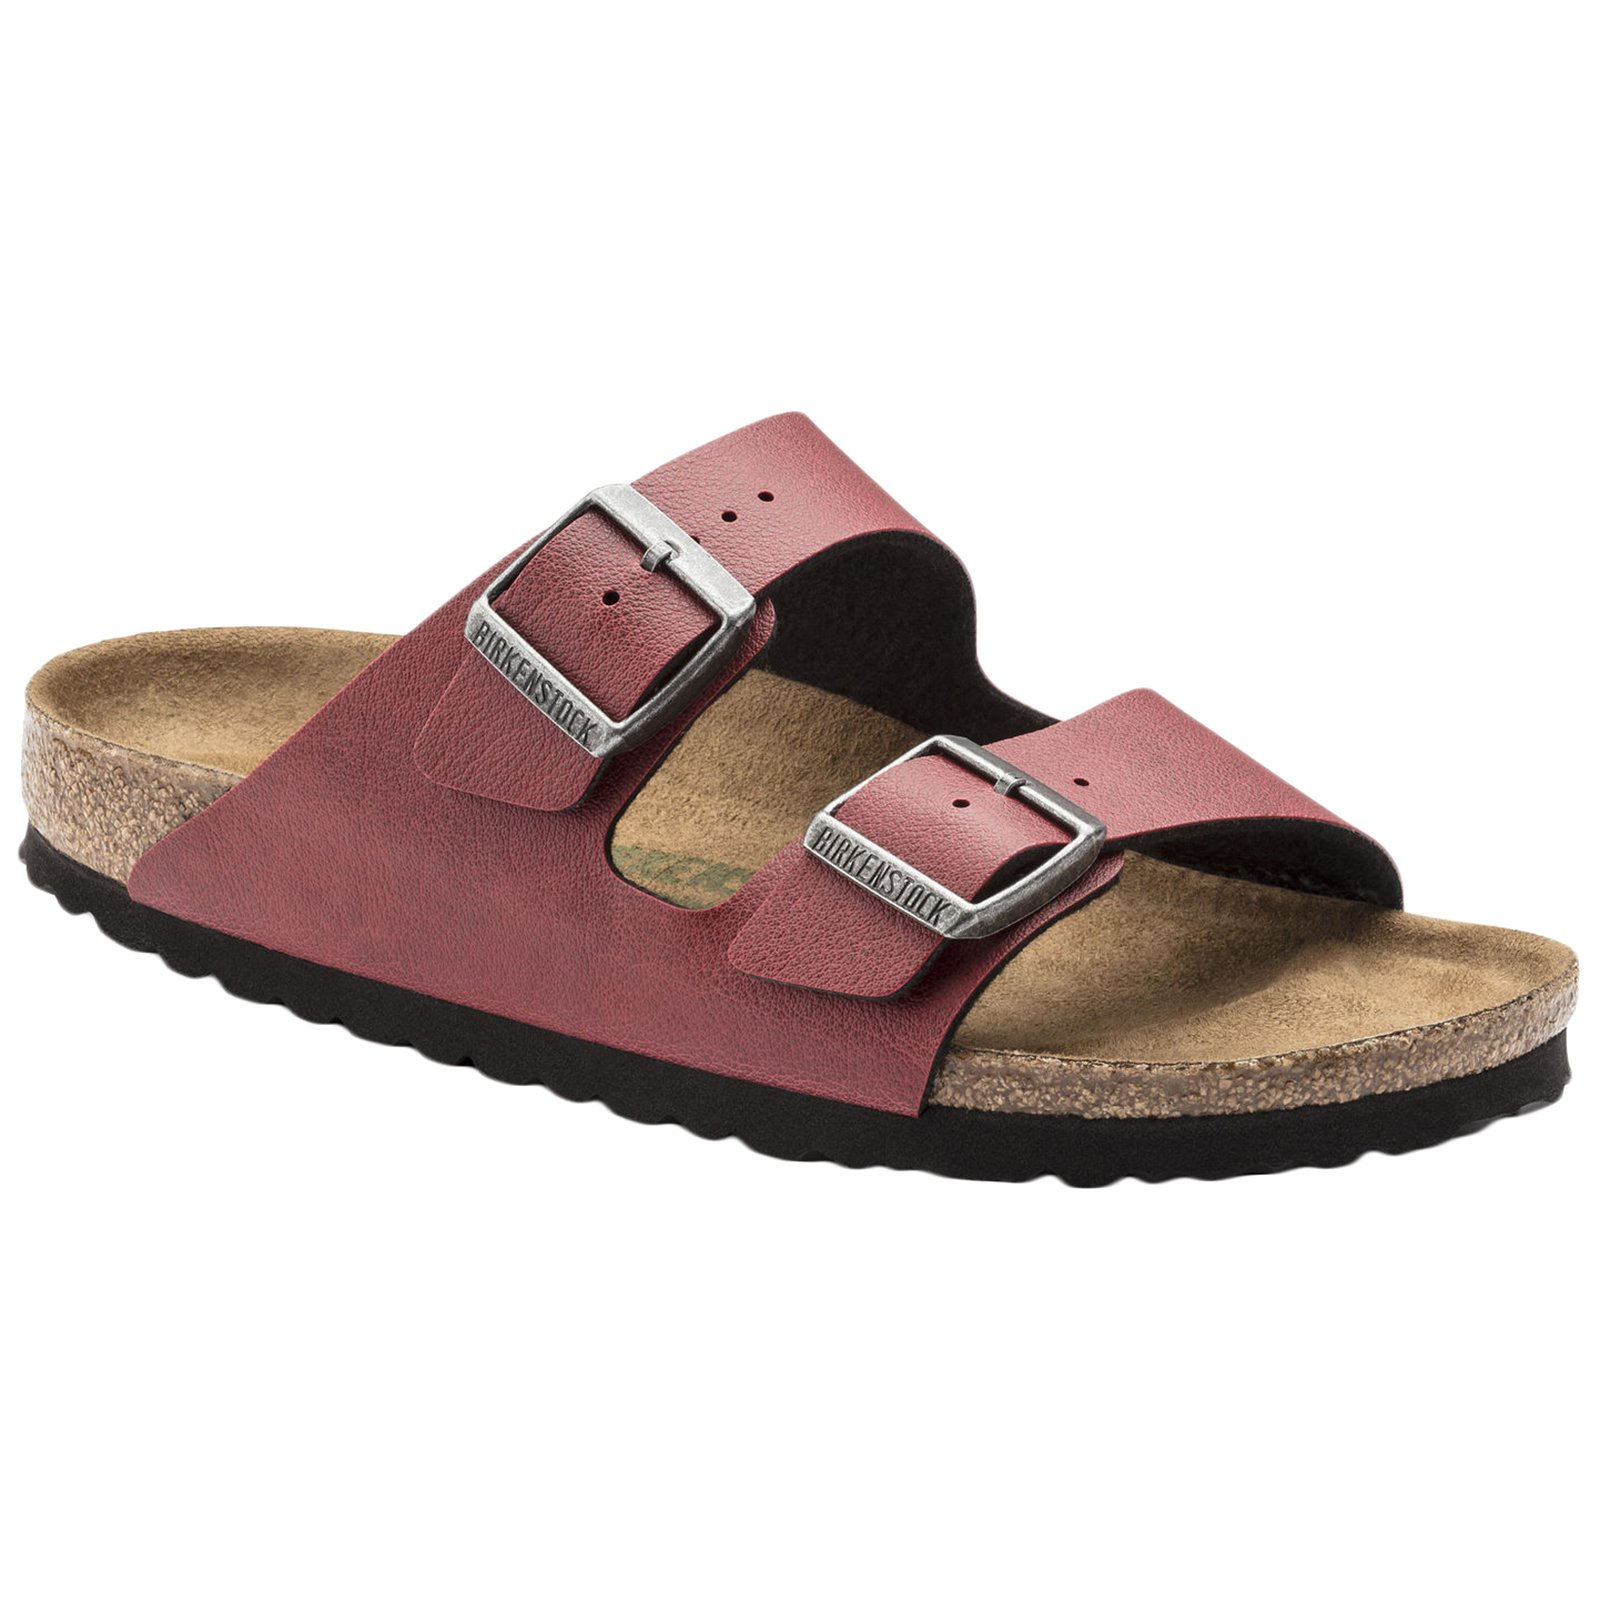 Birkenstock Unisex Arizona Birko-Flor Bordeaux Sandals 8 W/6 M US